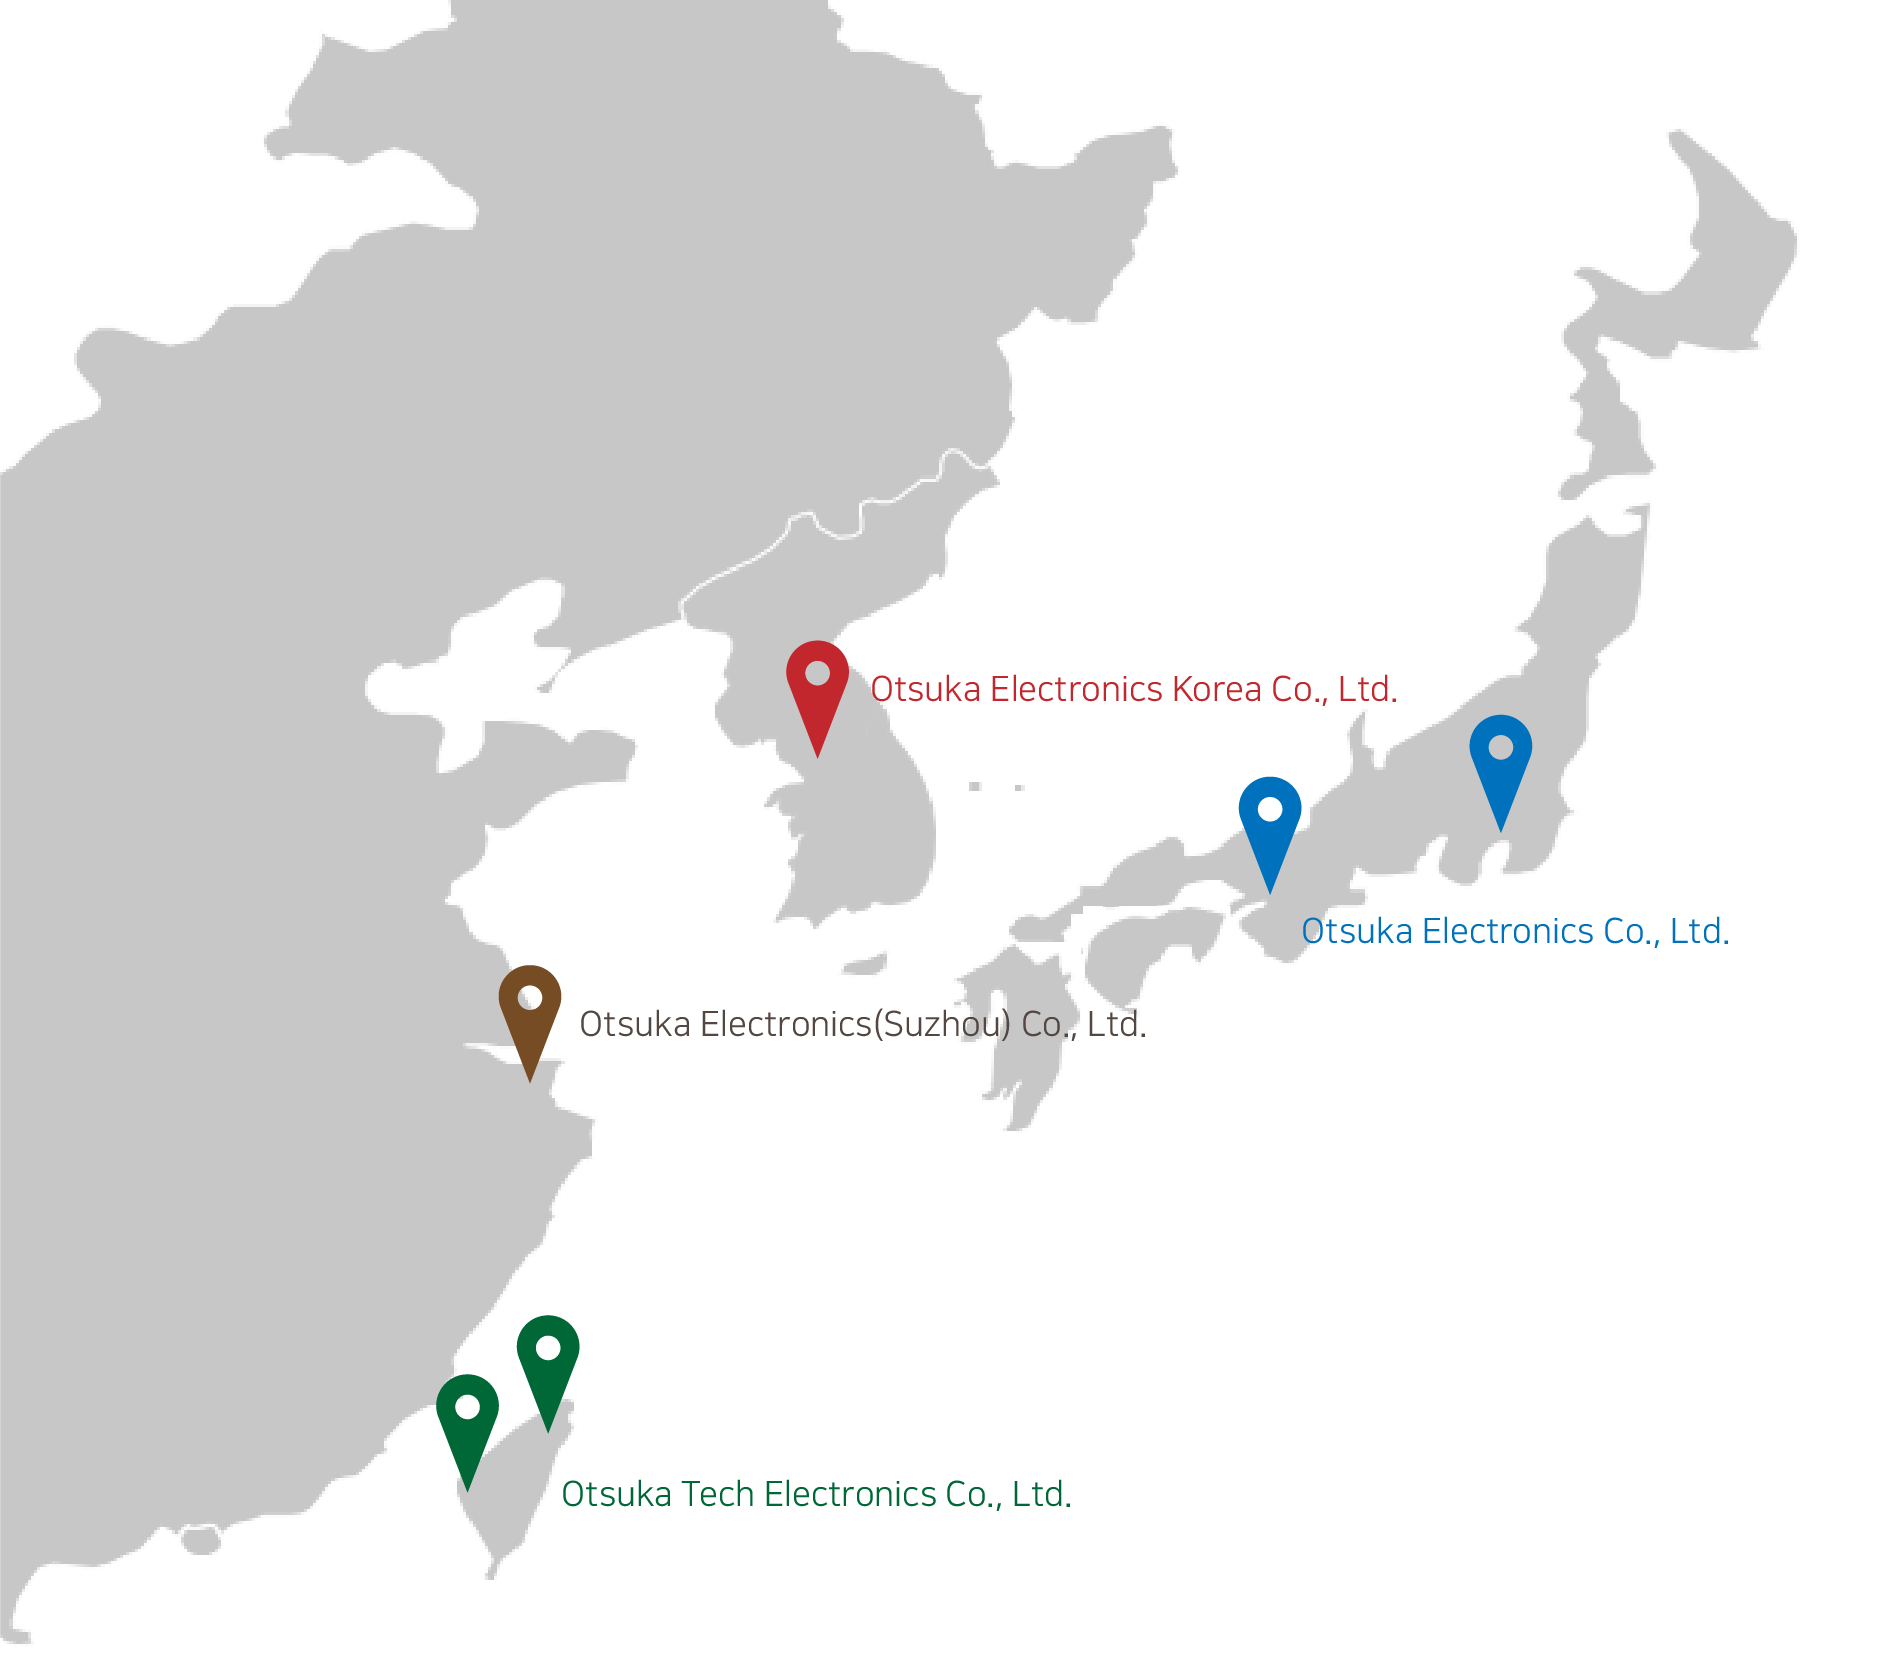 Map of Otsuka Electronics Headquarter and branches